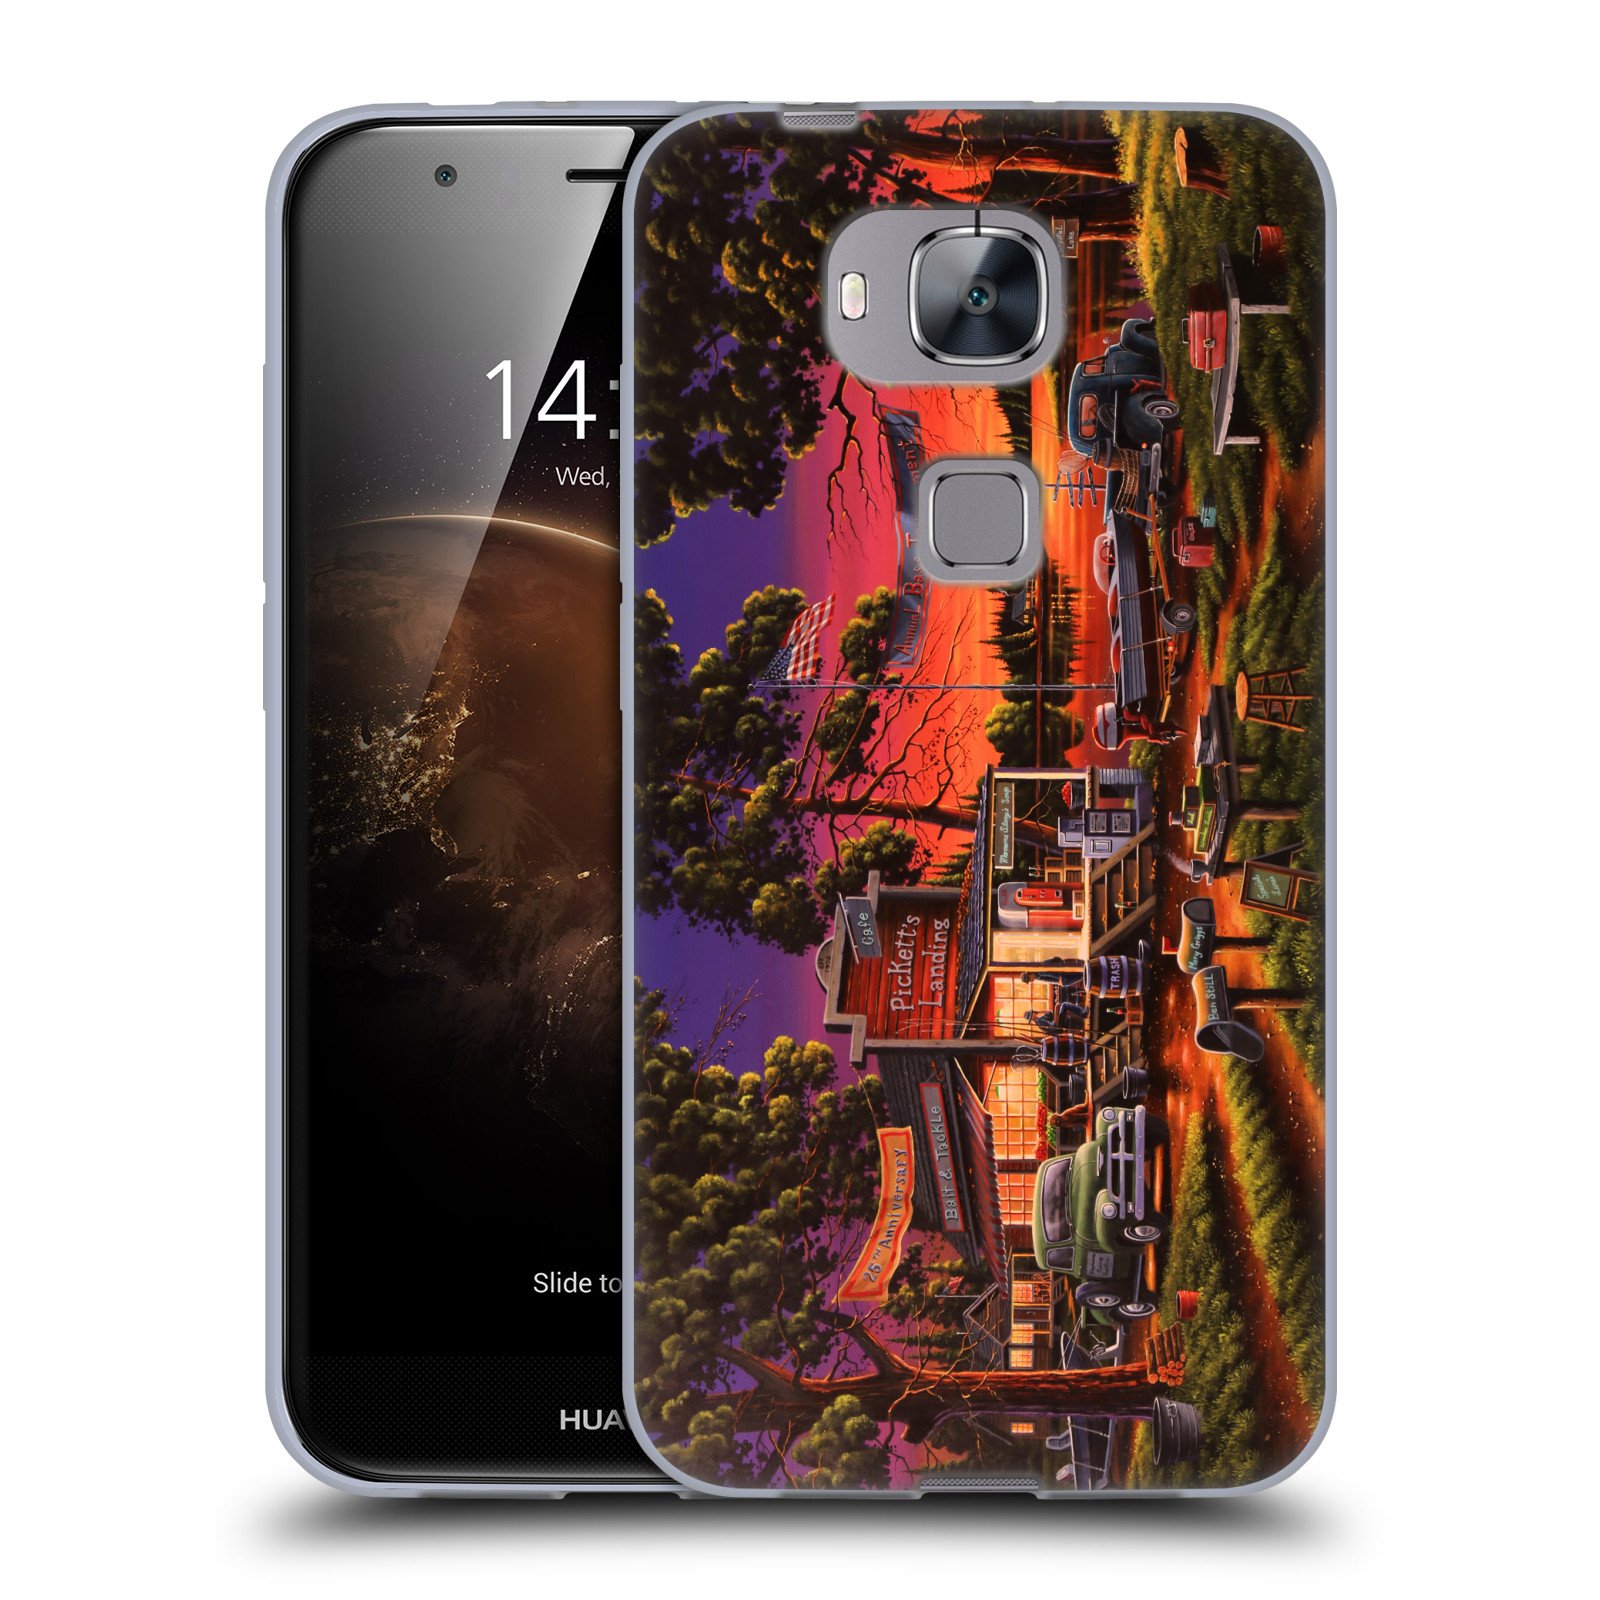 OFFICIAL-GENO-PEOPLES-ART-HALLOWEEN-SOFT-GEL-CASE-FOR-HUAWEI-PHONES-2